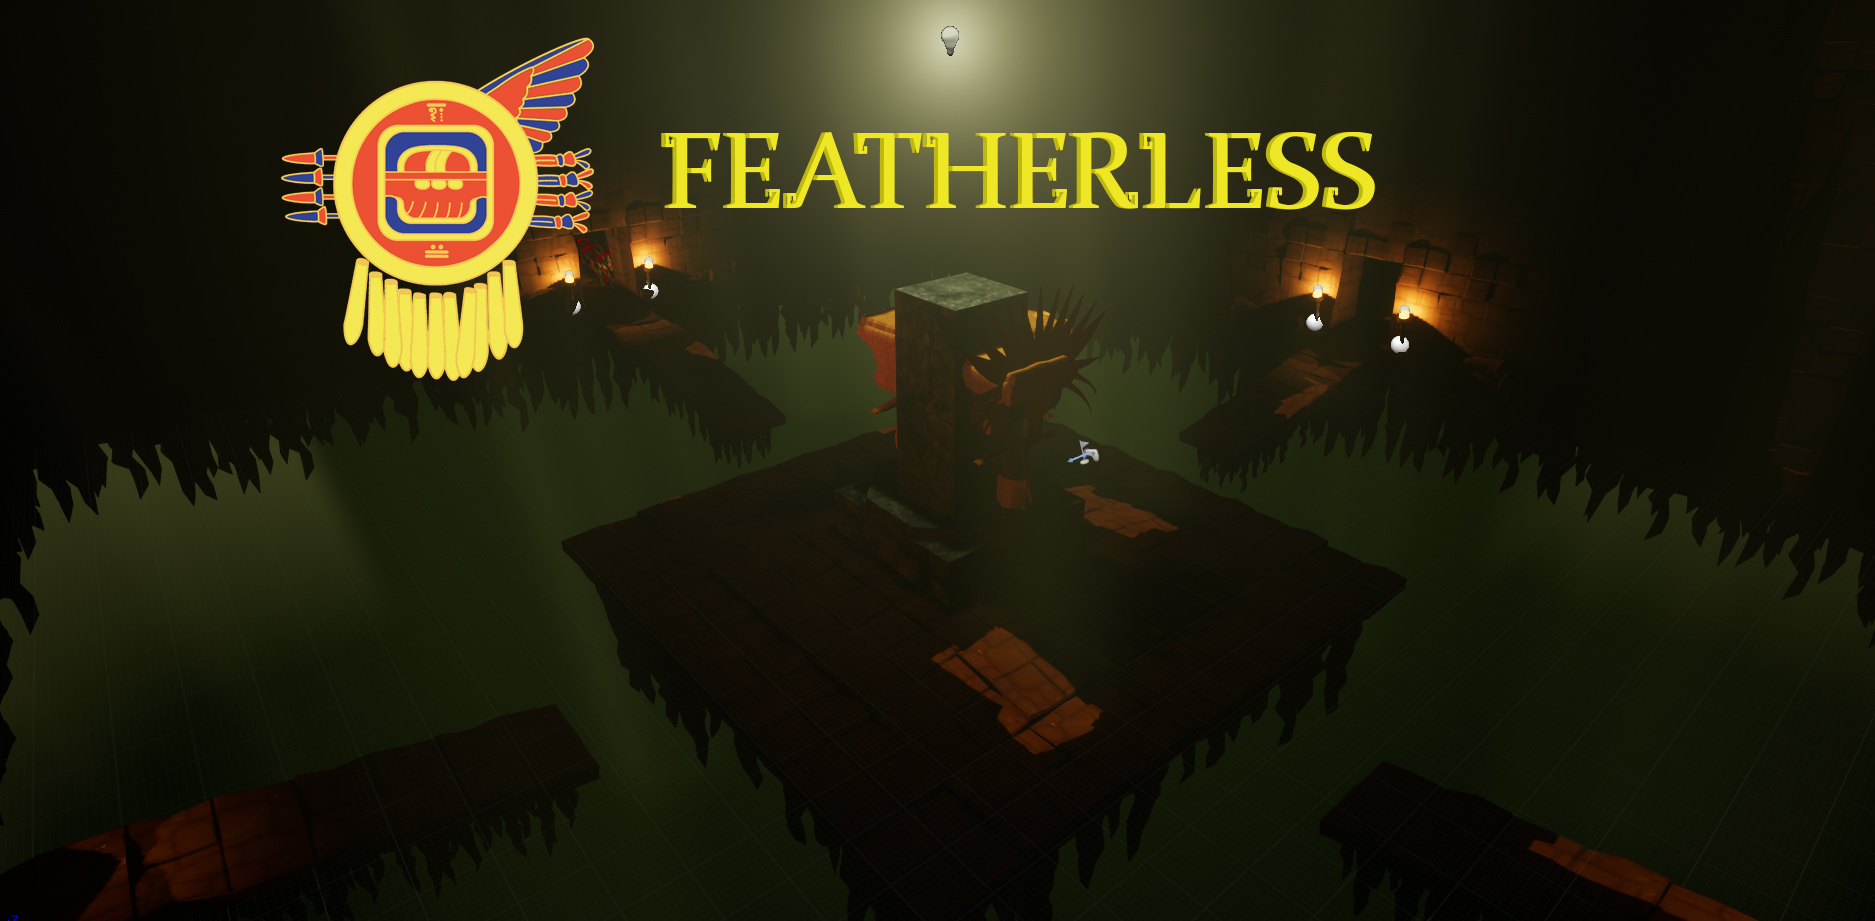 Featherless 1 2 [Mayan open-world rpg game] - Devlogs - itch io